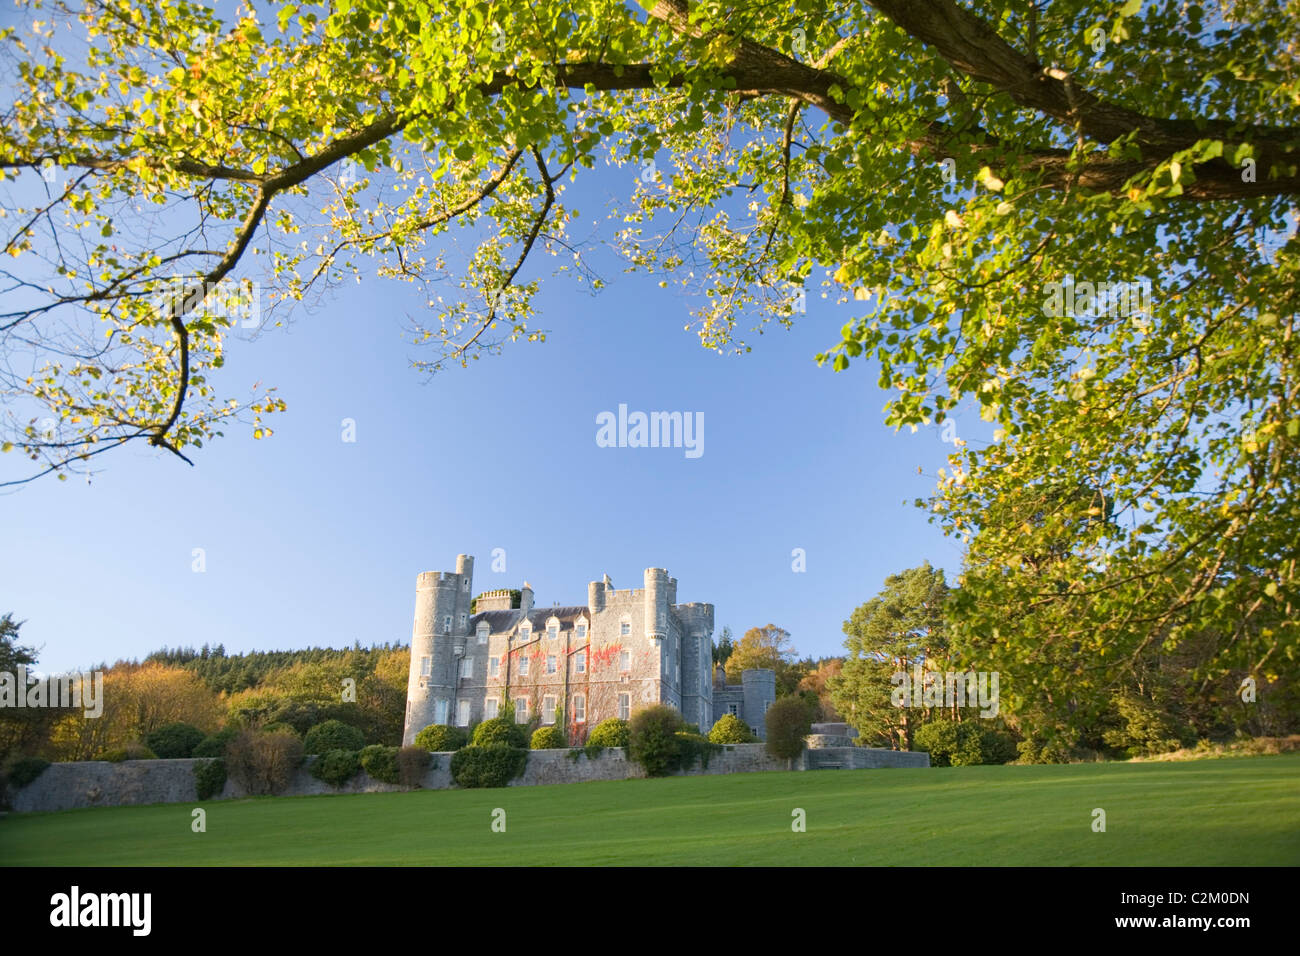 The Scottish baronial Castle at Castlewellan Forest Park, County Down, Northern Ireland. - Stock Image